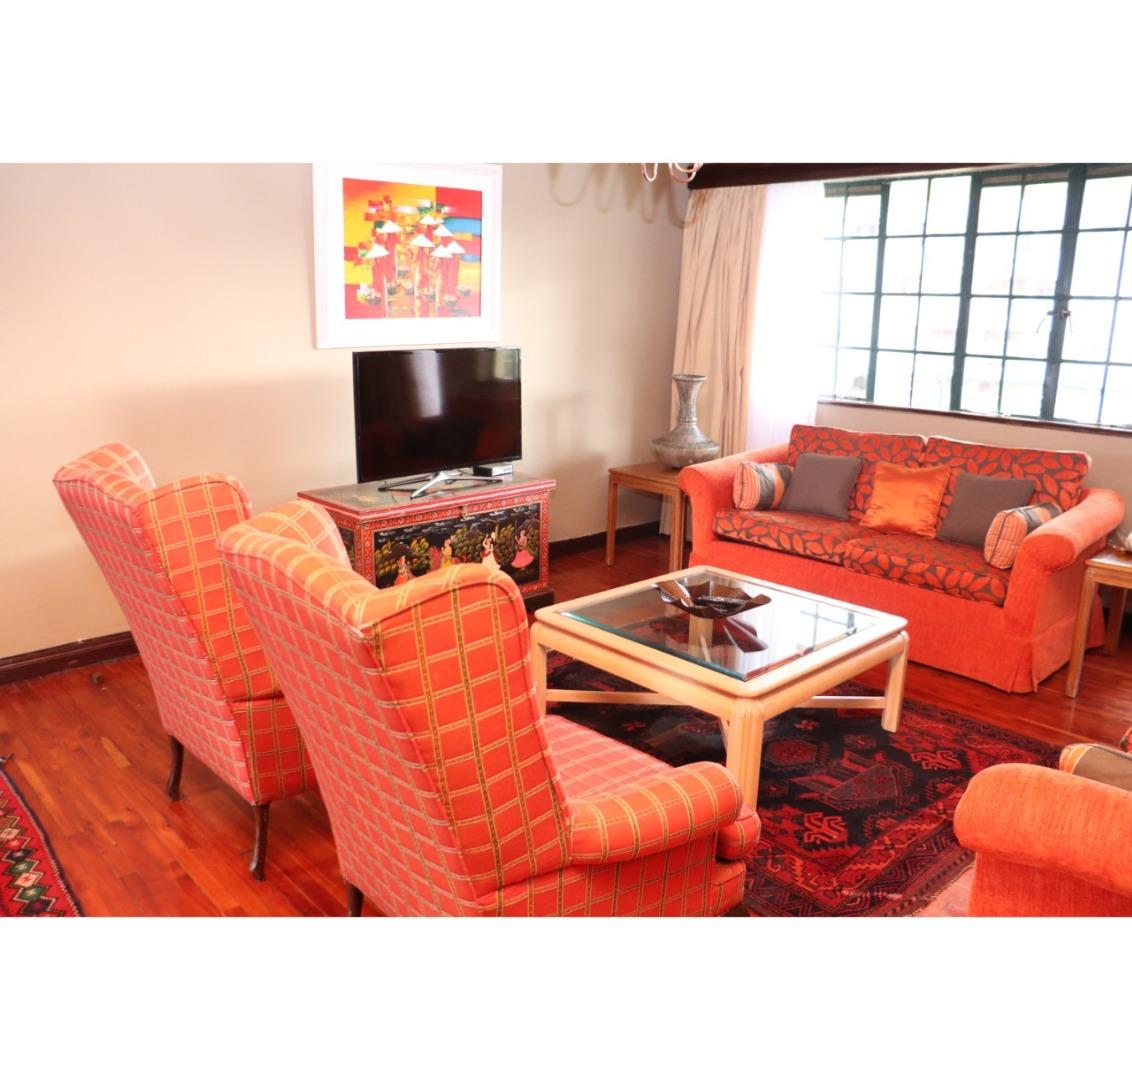 3 bedroom Fully Furnished apartment To Let in Bellway Court